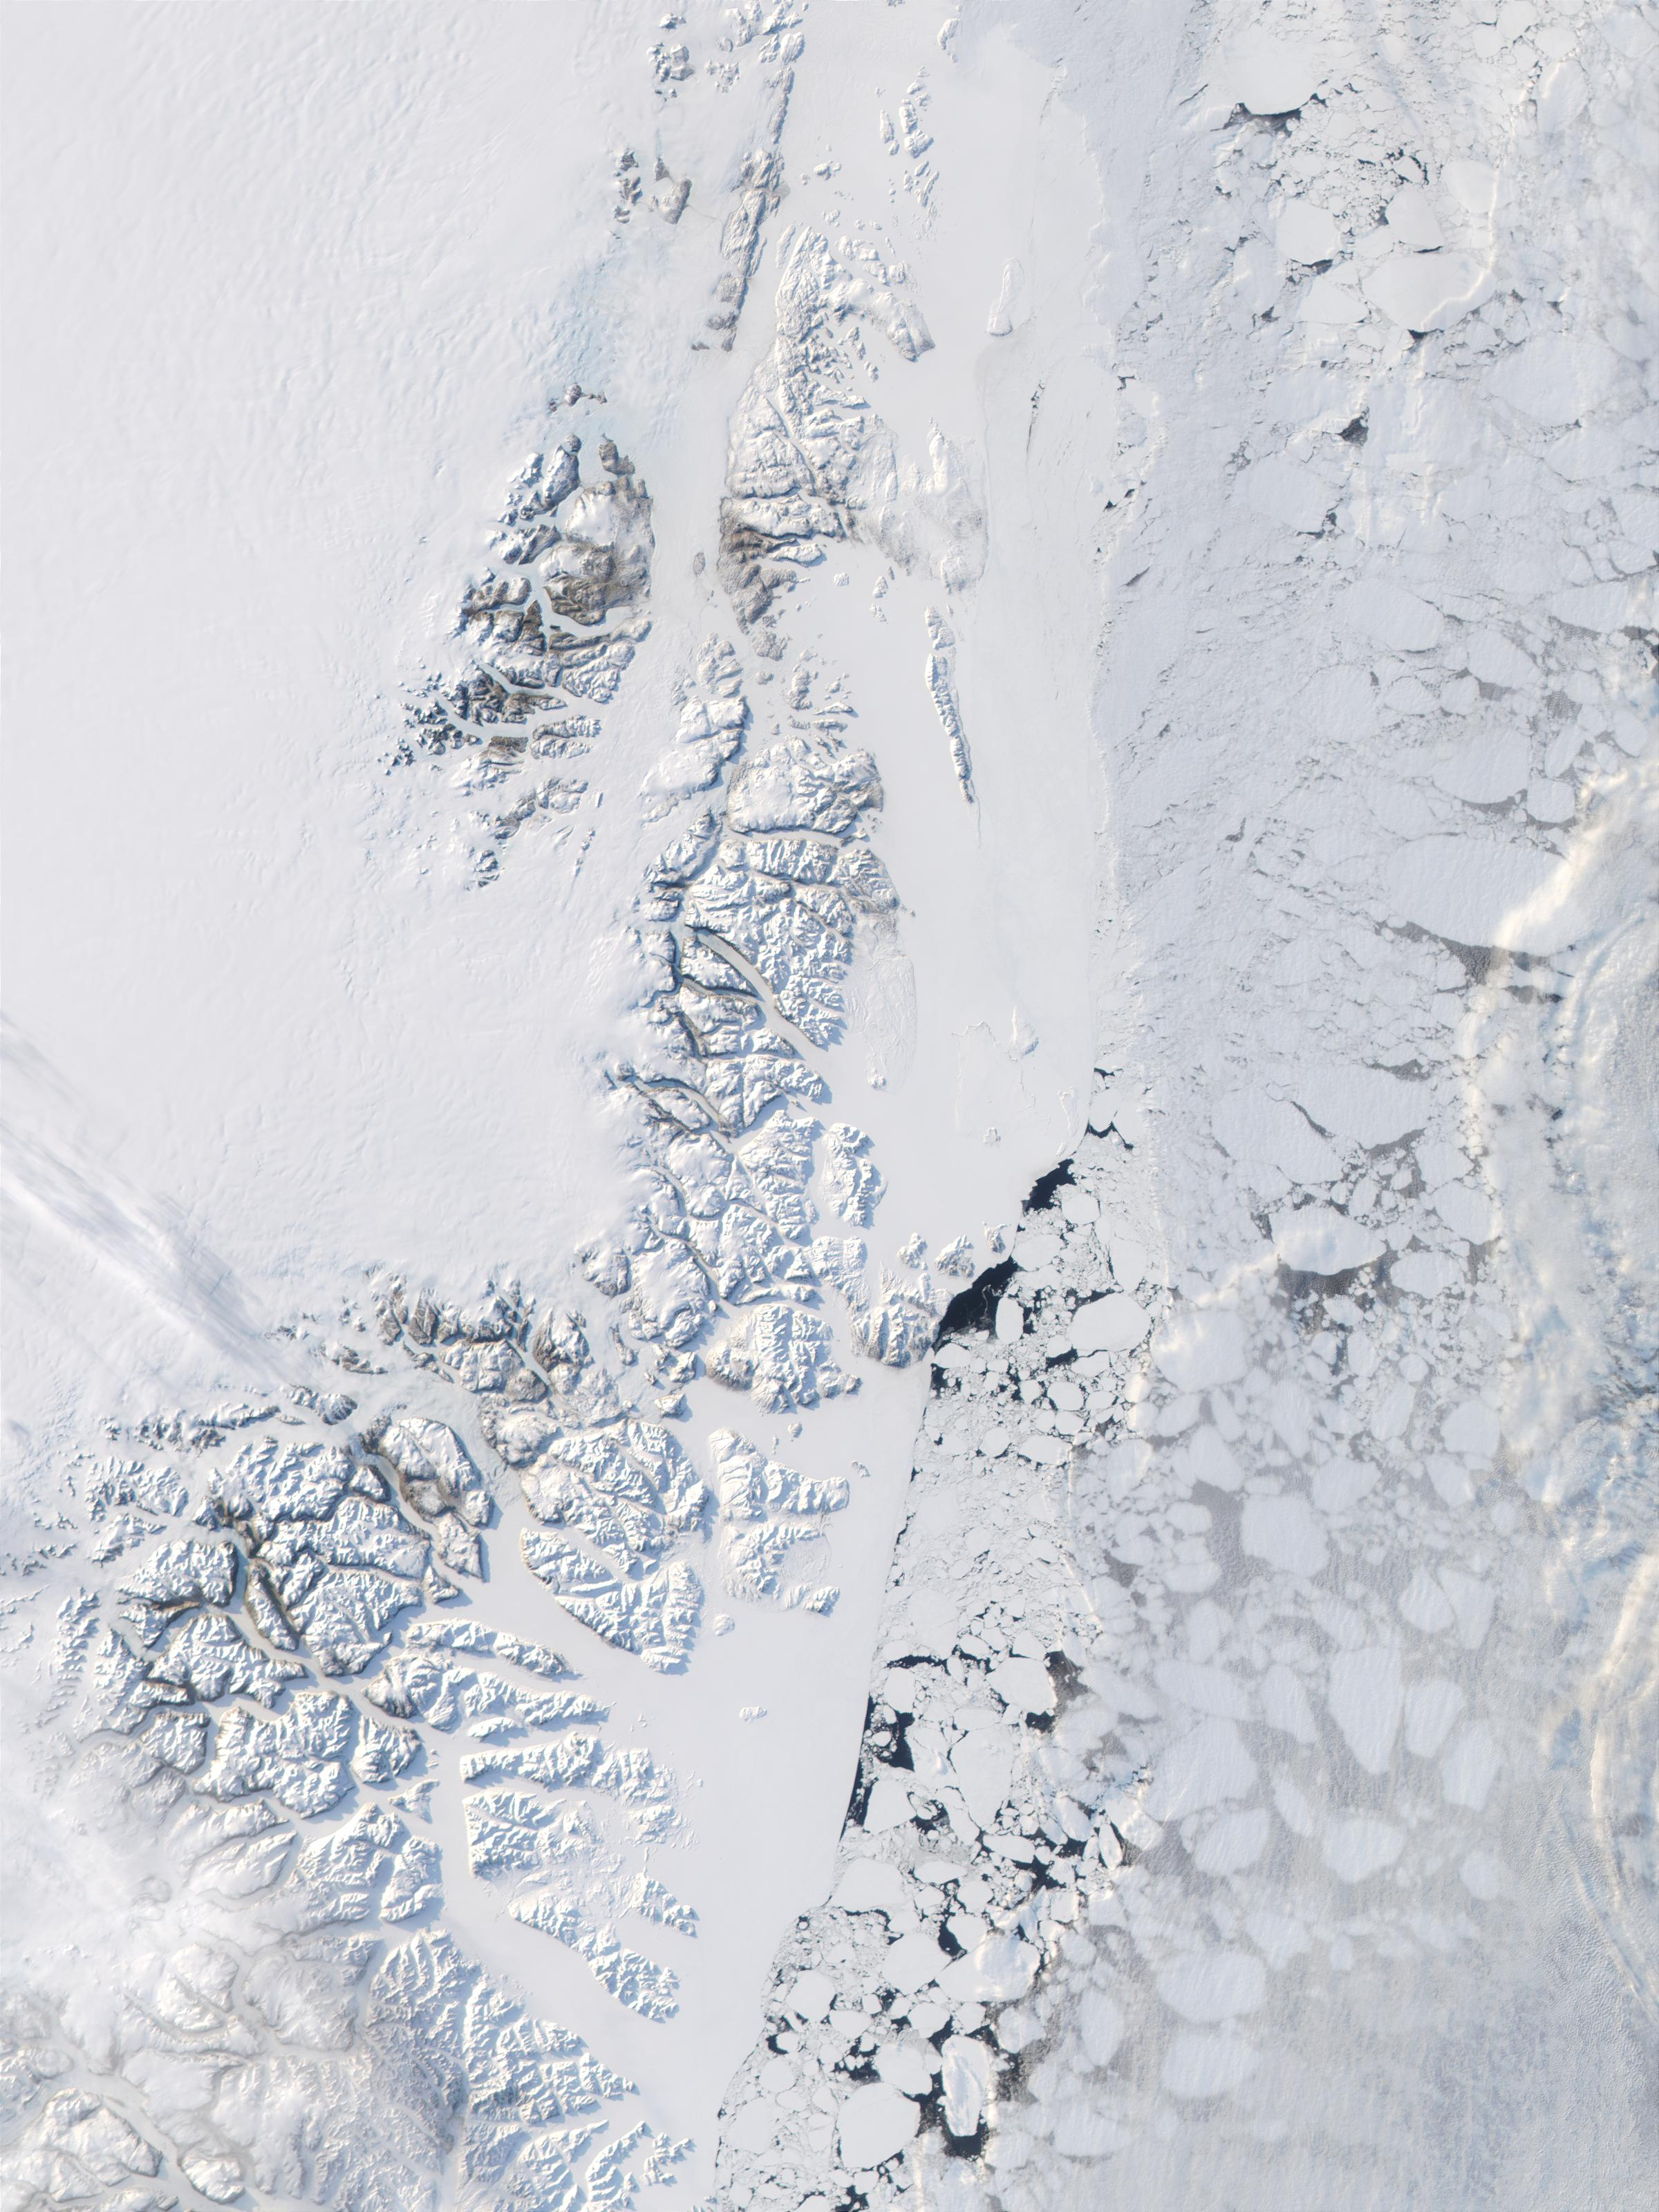 Eastern coast of Greenland and Greenland Sea - related image preview